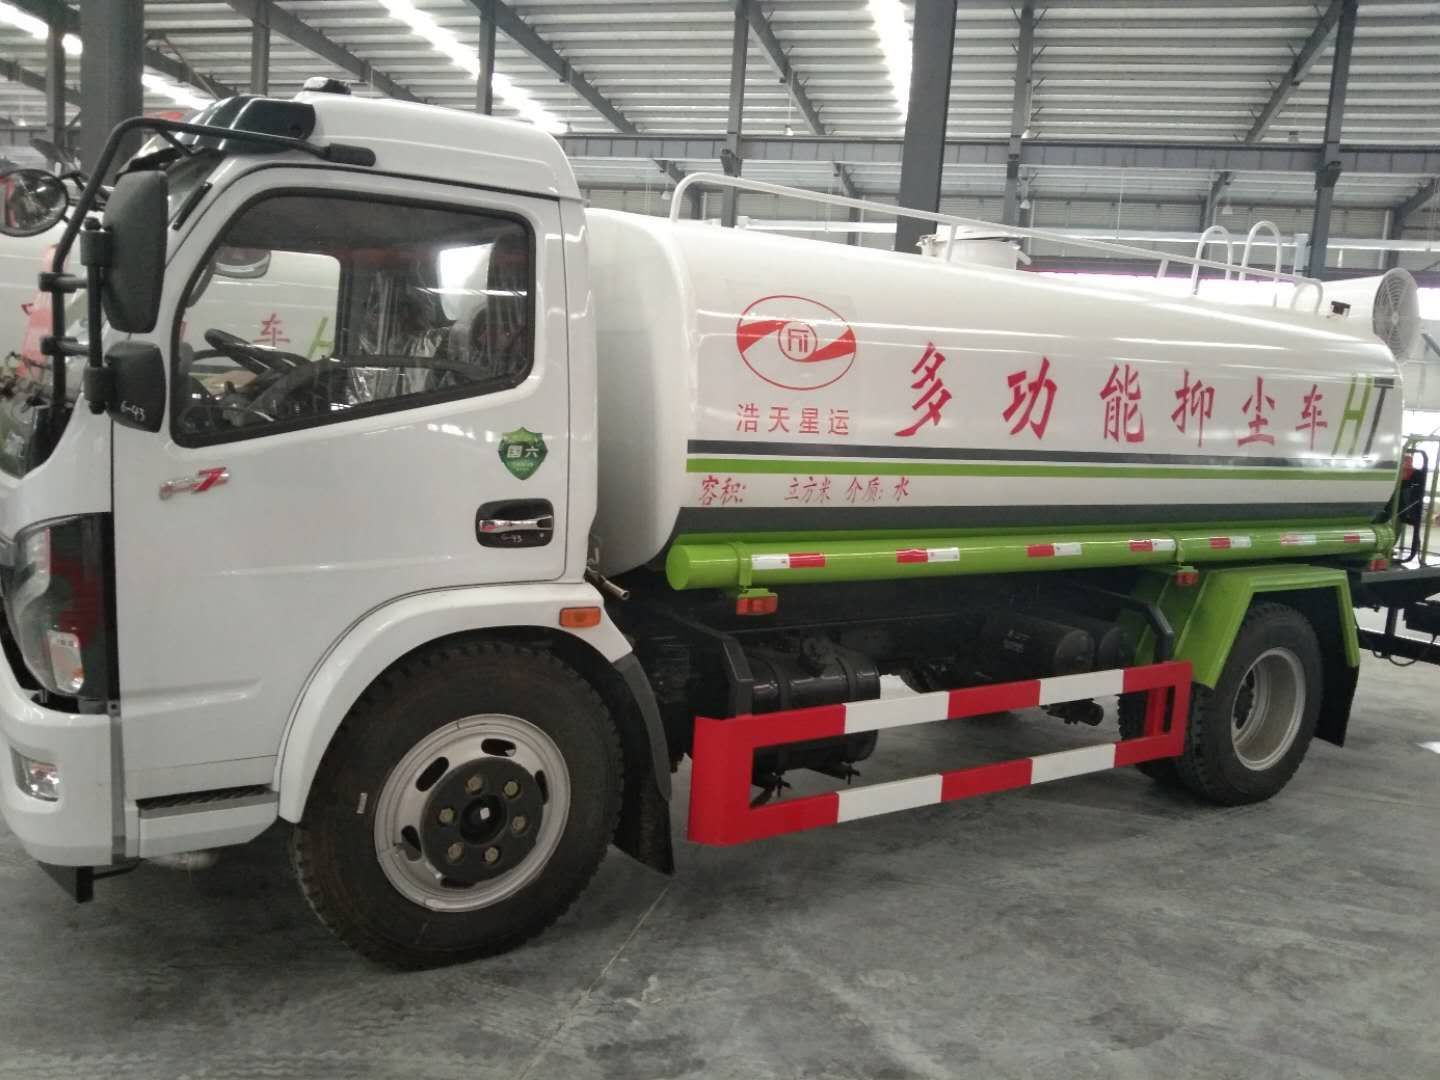 New dust suppression trucks for epidemic prevention